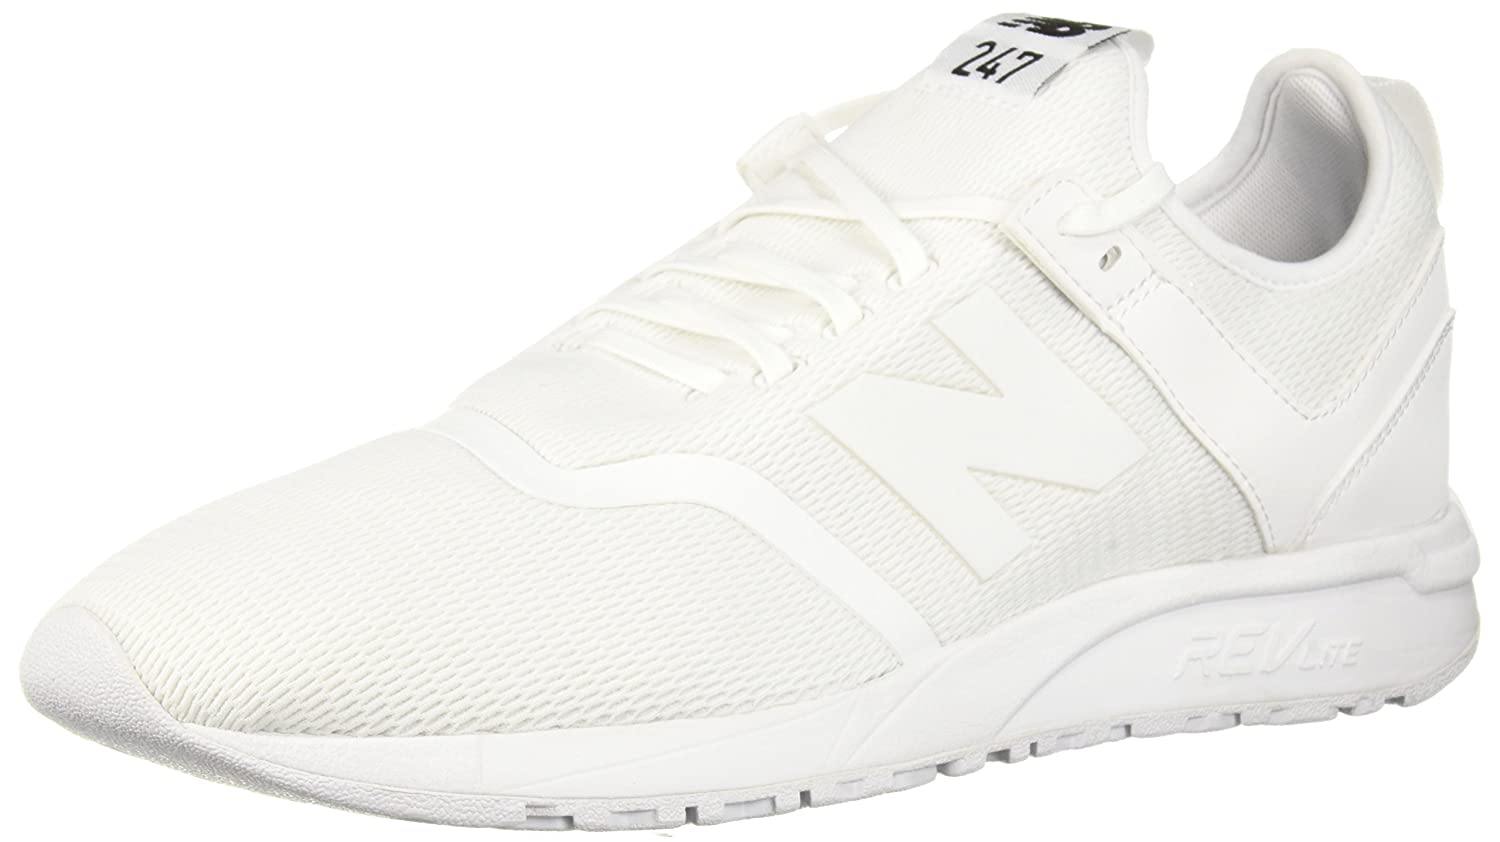 TALLA 43 EU. New Balance 247v1, Zapatillas Unisex Adulto